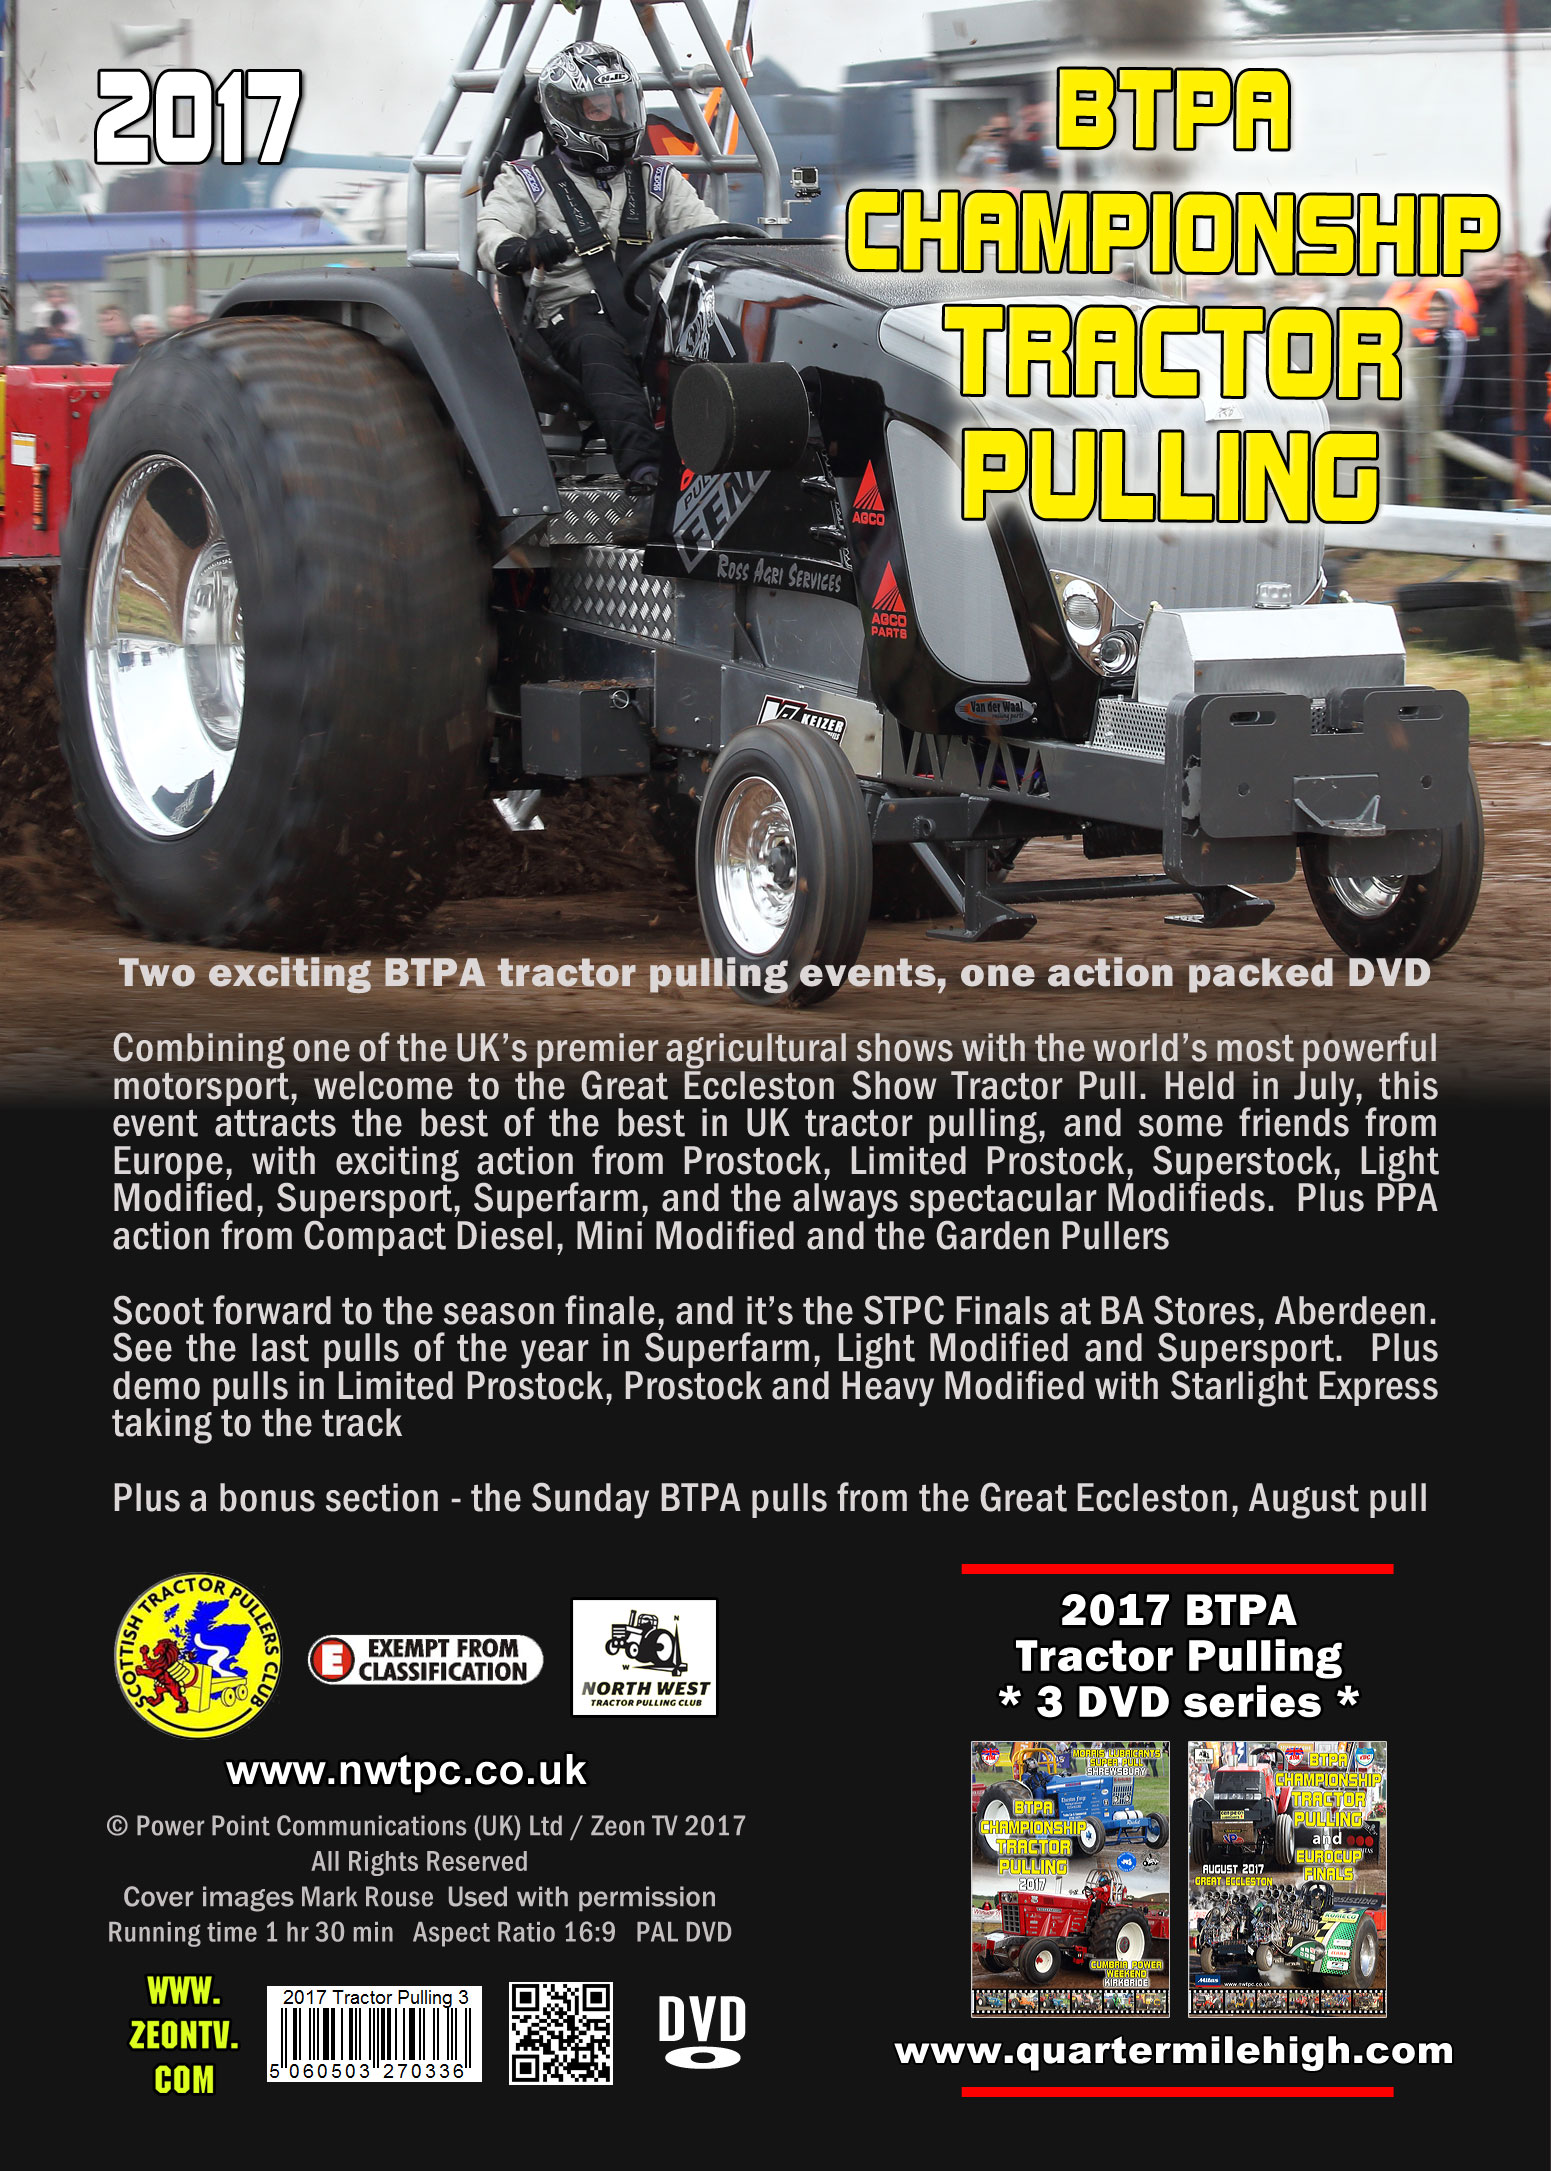 2017 Btpa Tractor Pulling Series Dvd Great Eccleston Show And Bs